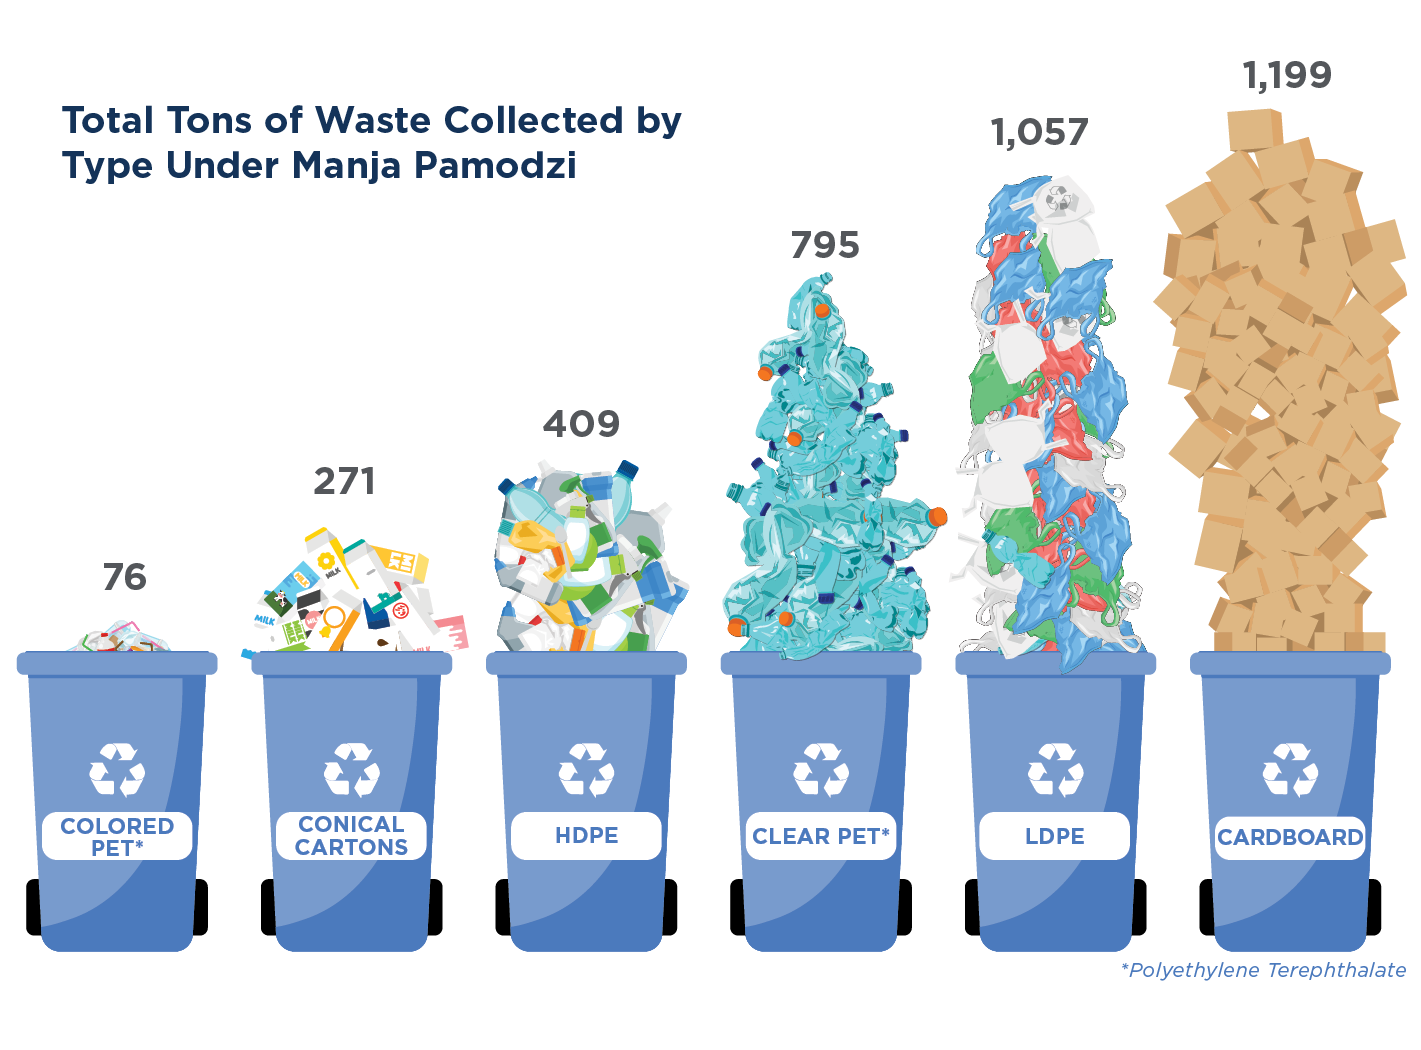 Types of waste collected